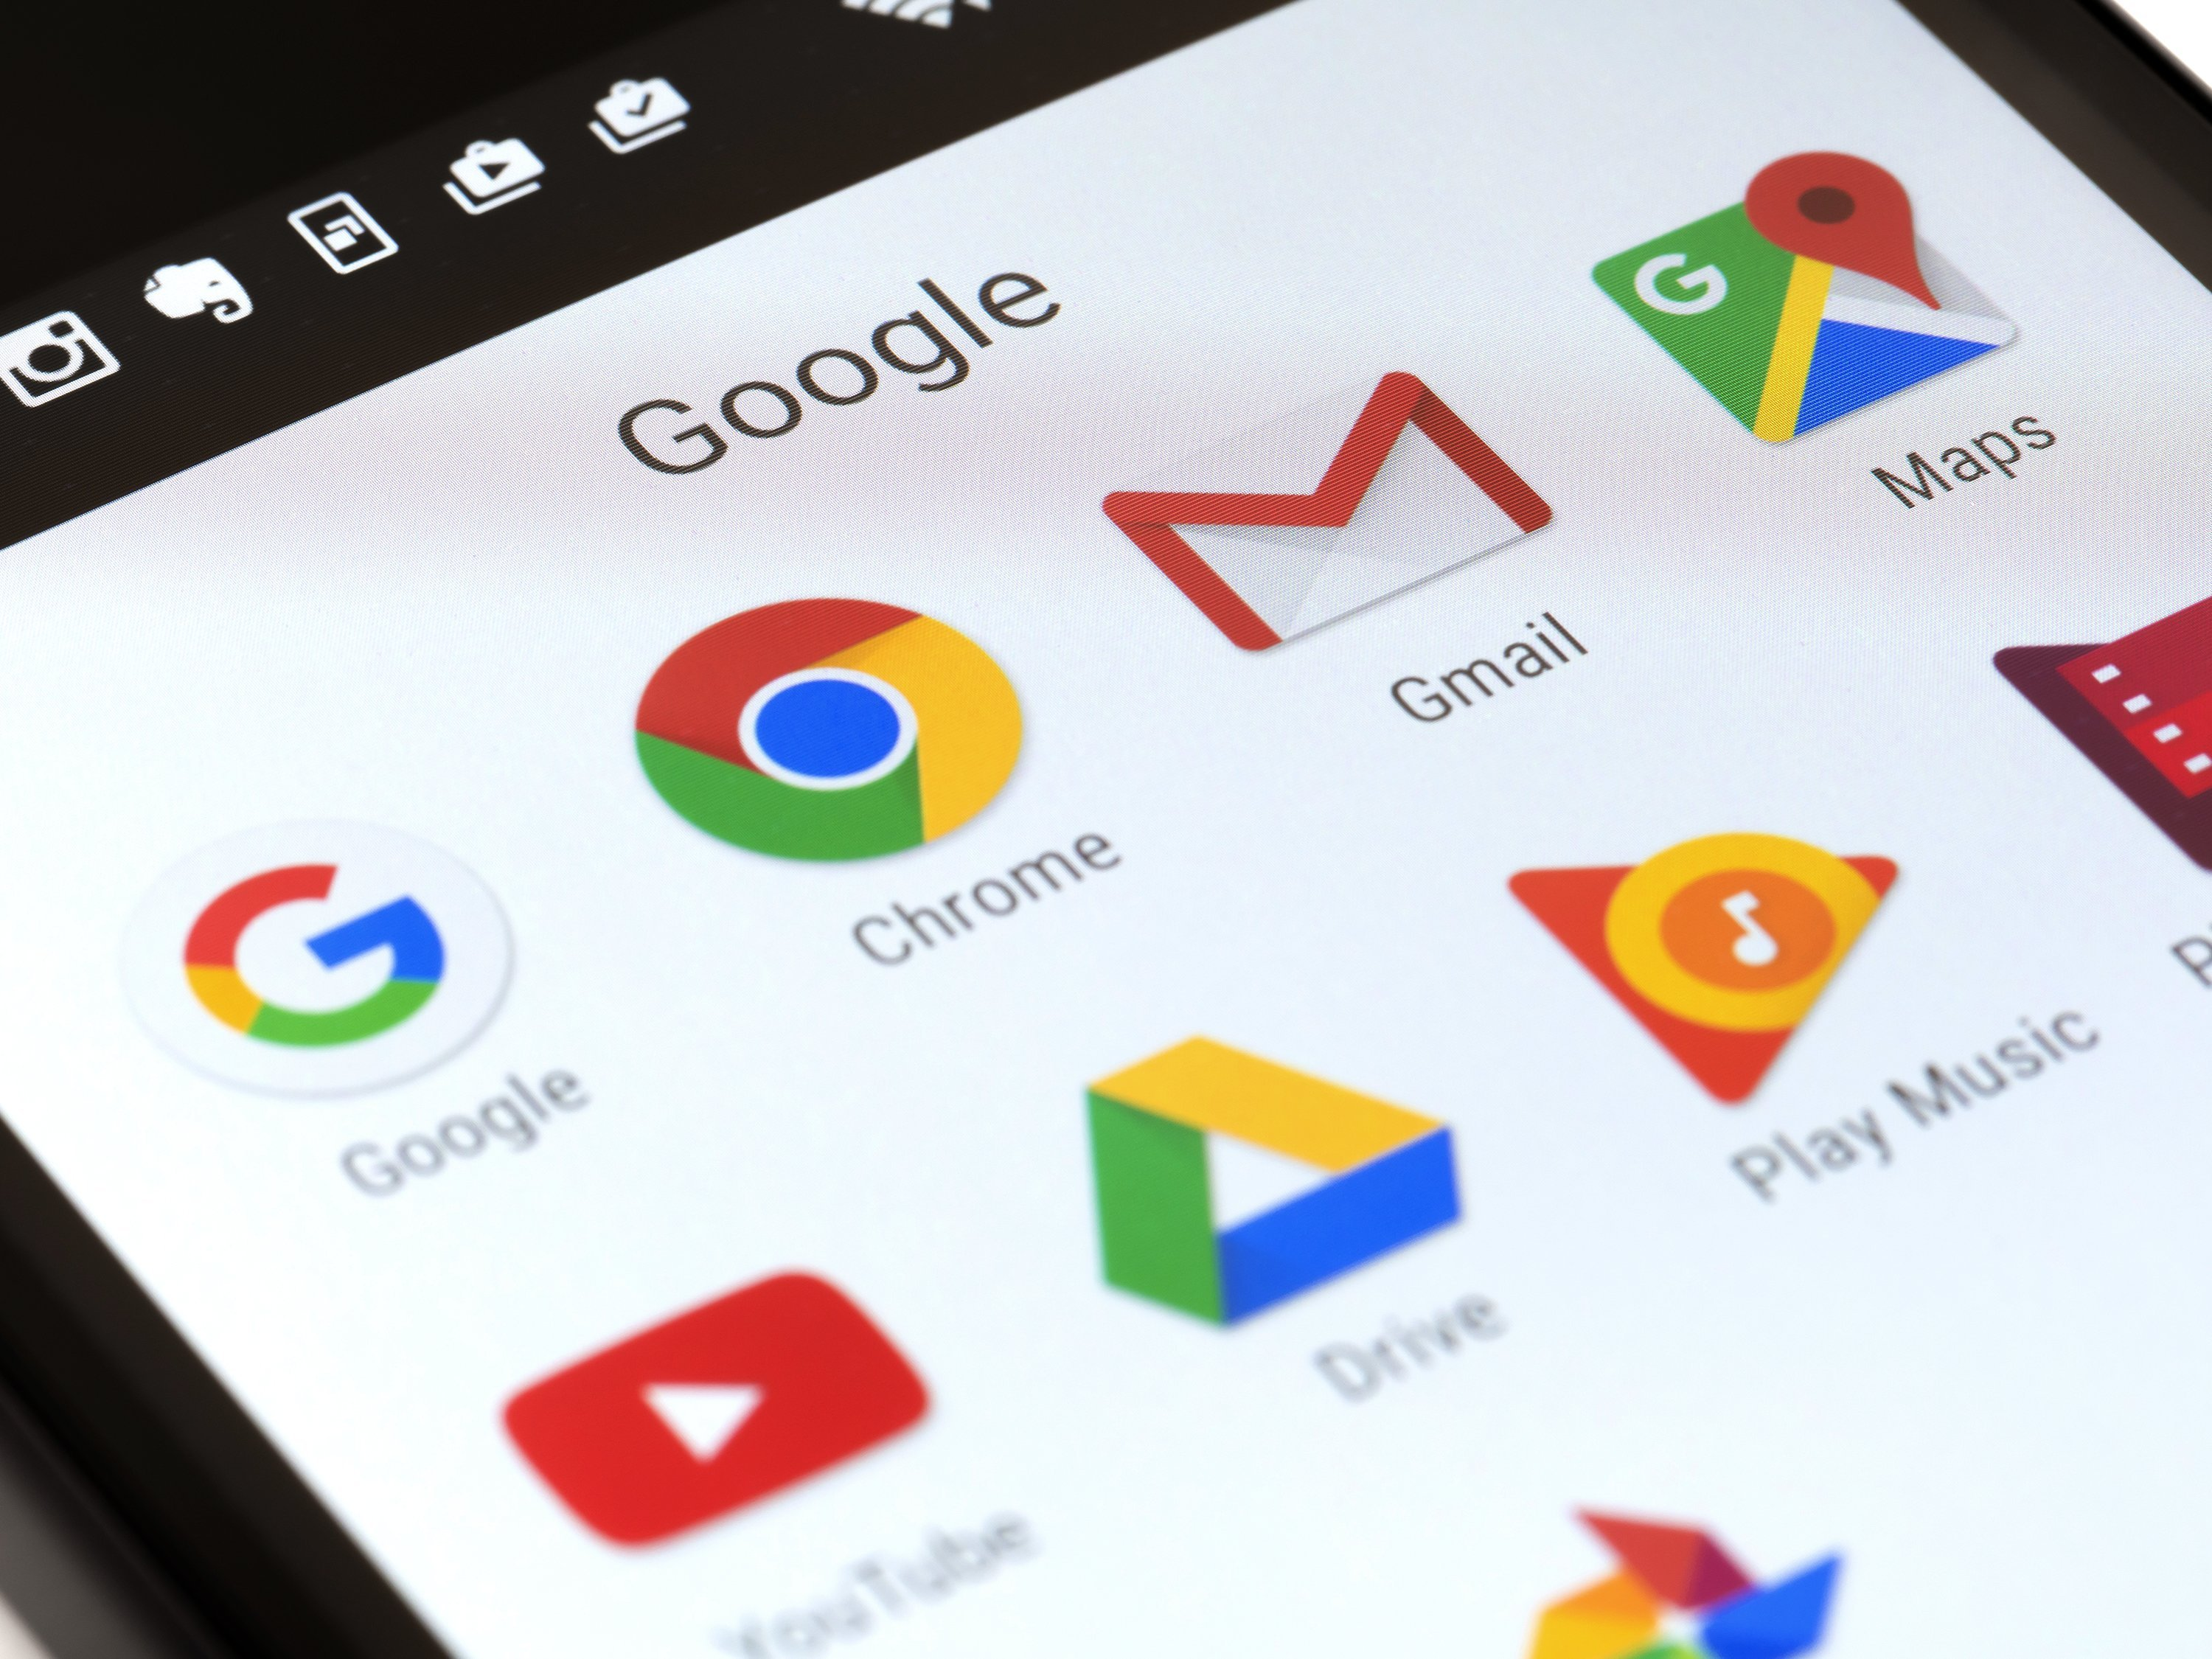 Google is defending its policy to allow third-party apps to access and share data from Gmail accounts